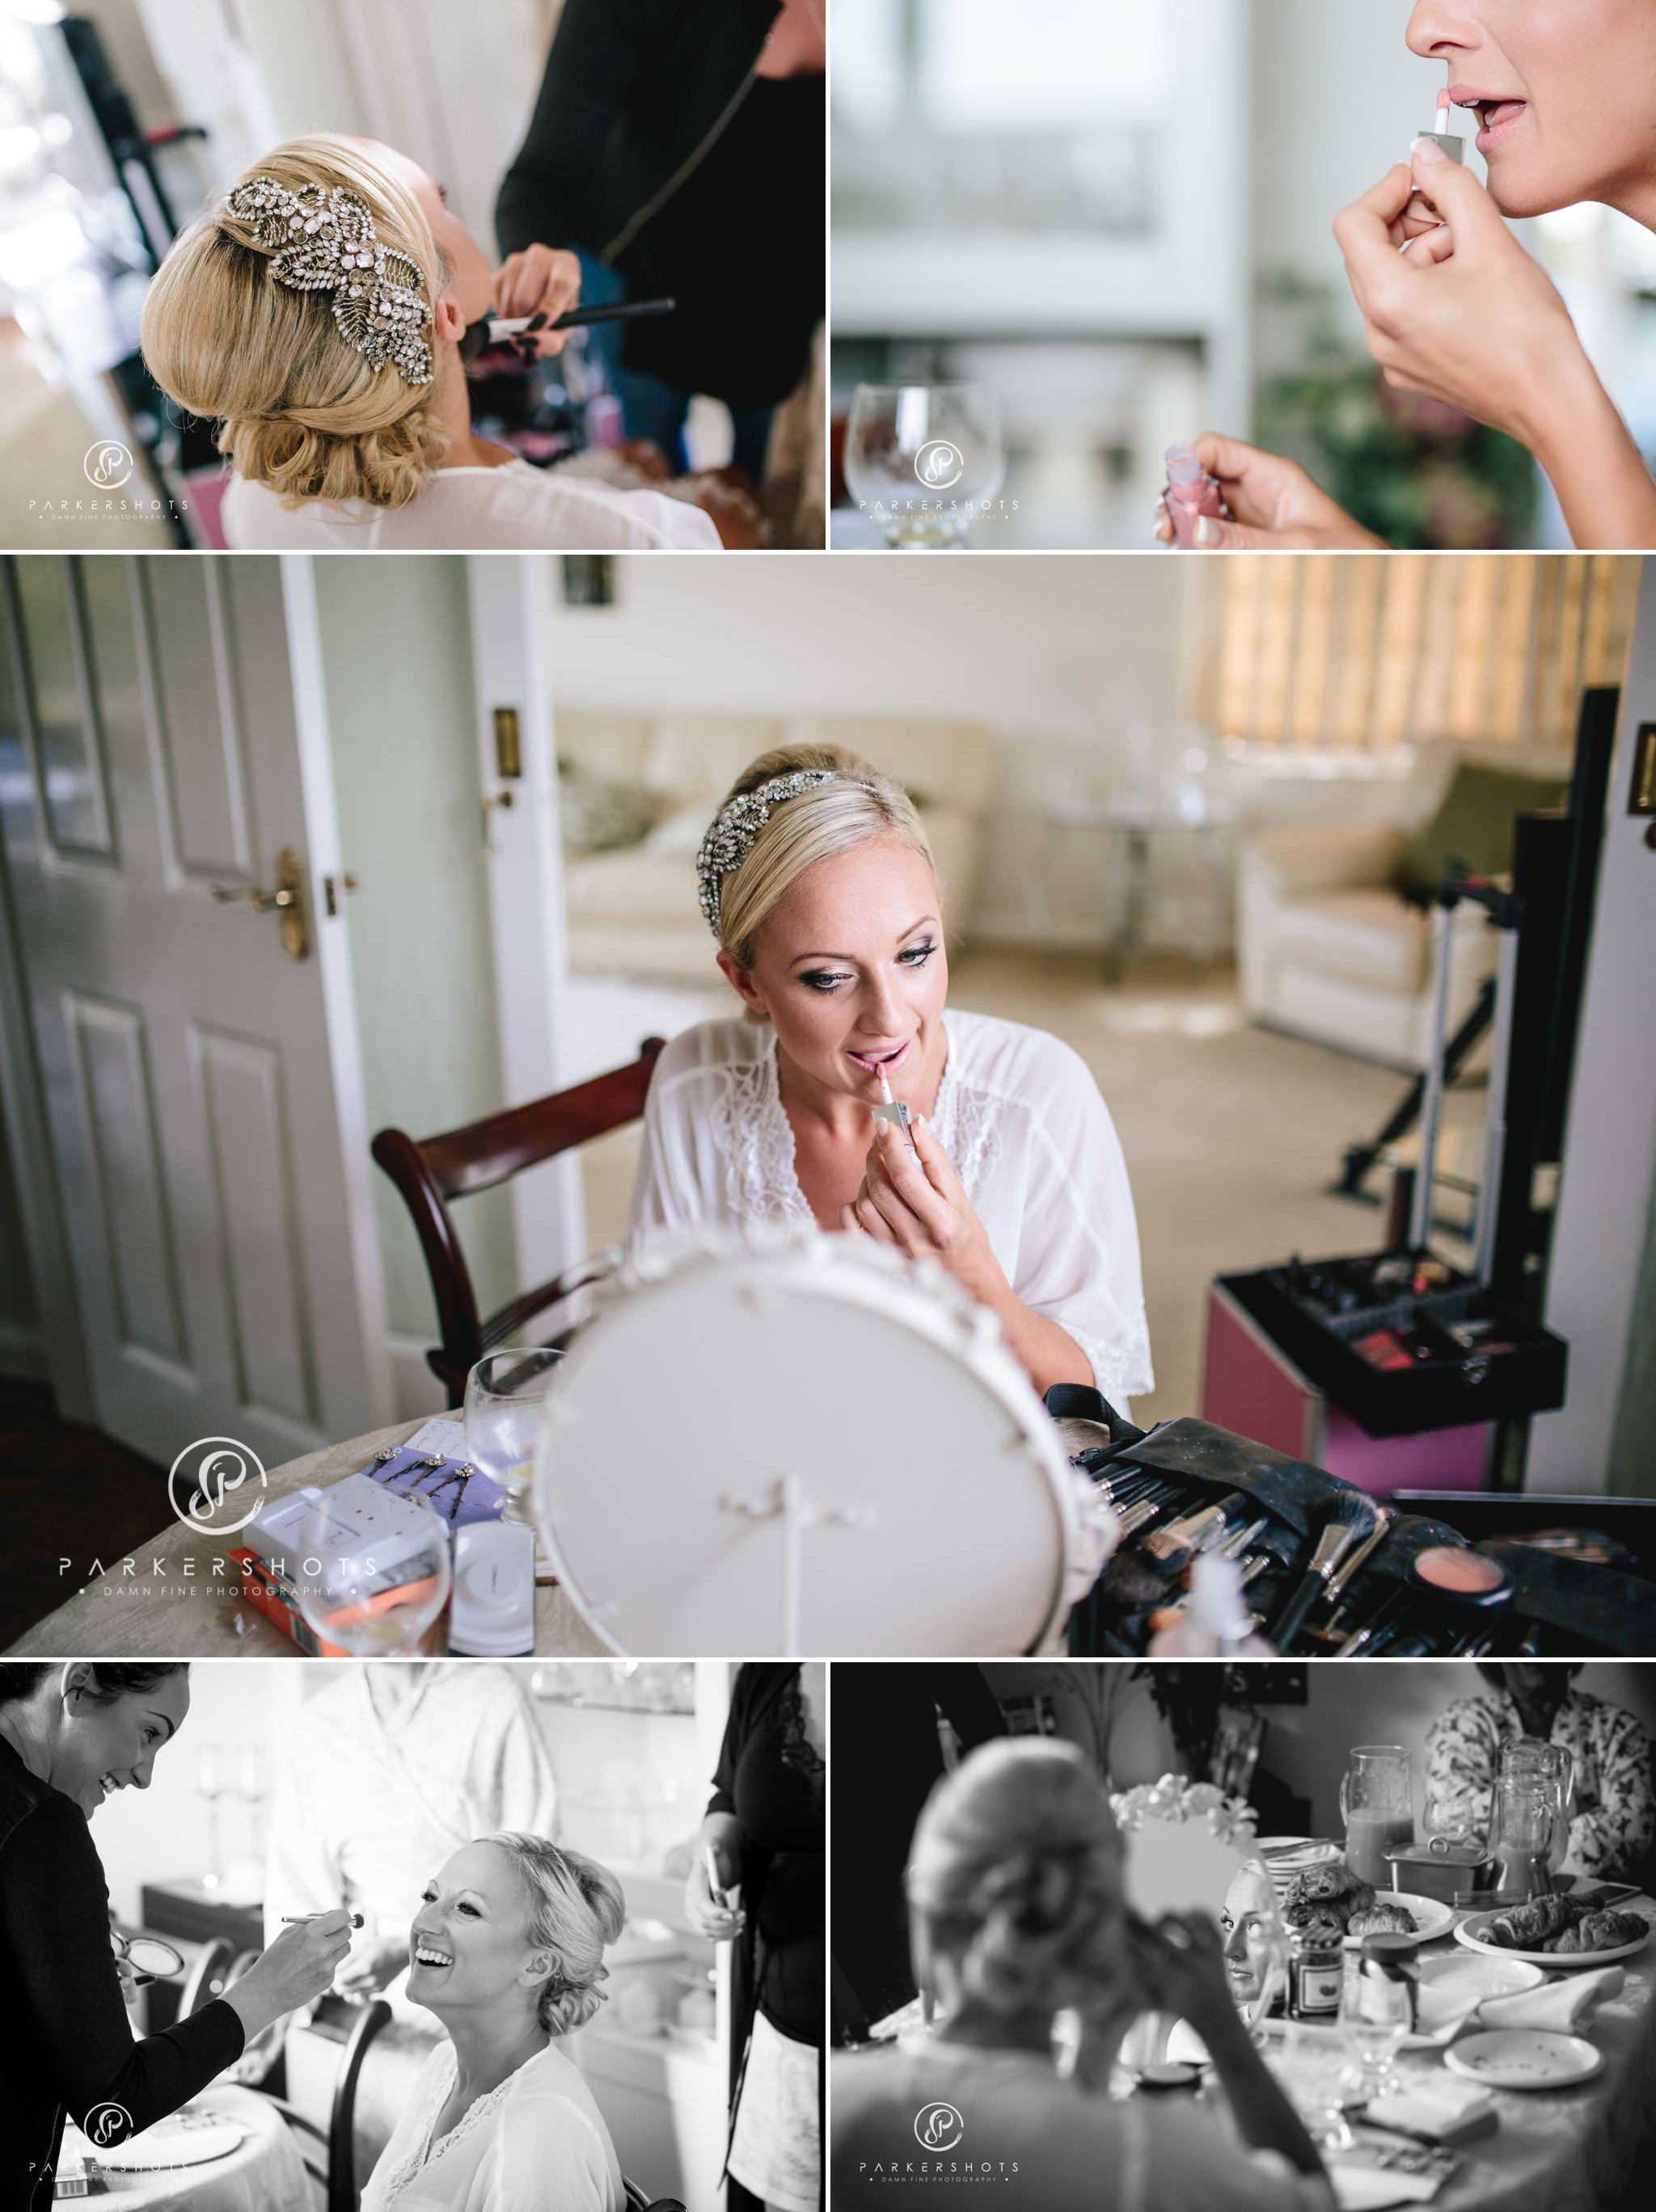 Chafford Park Wedding Photographer 2